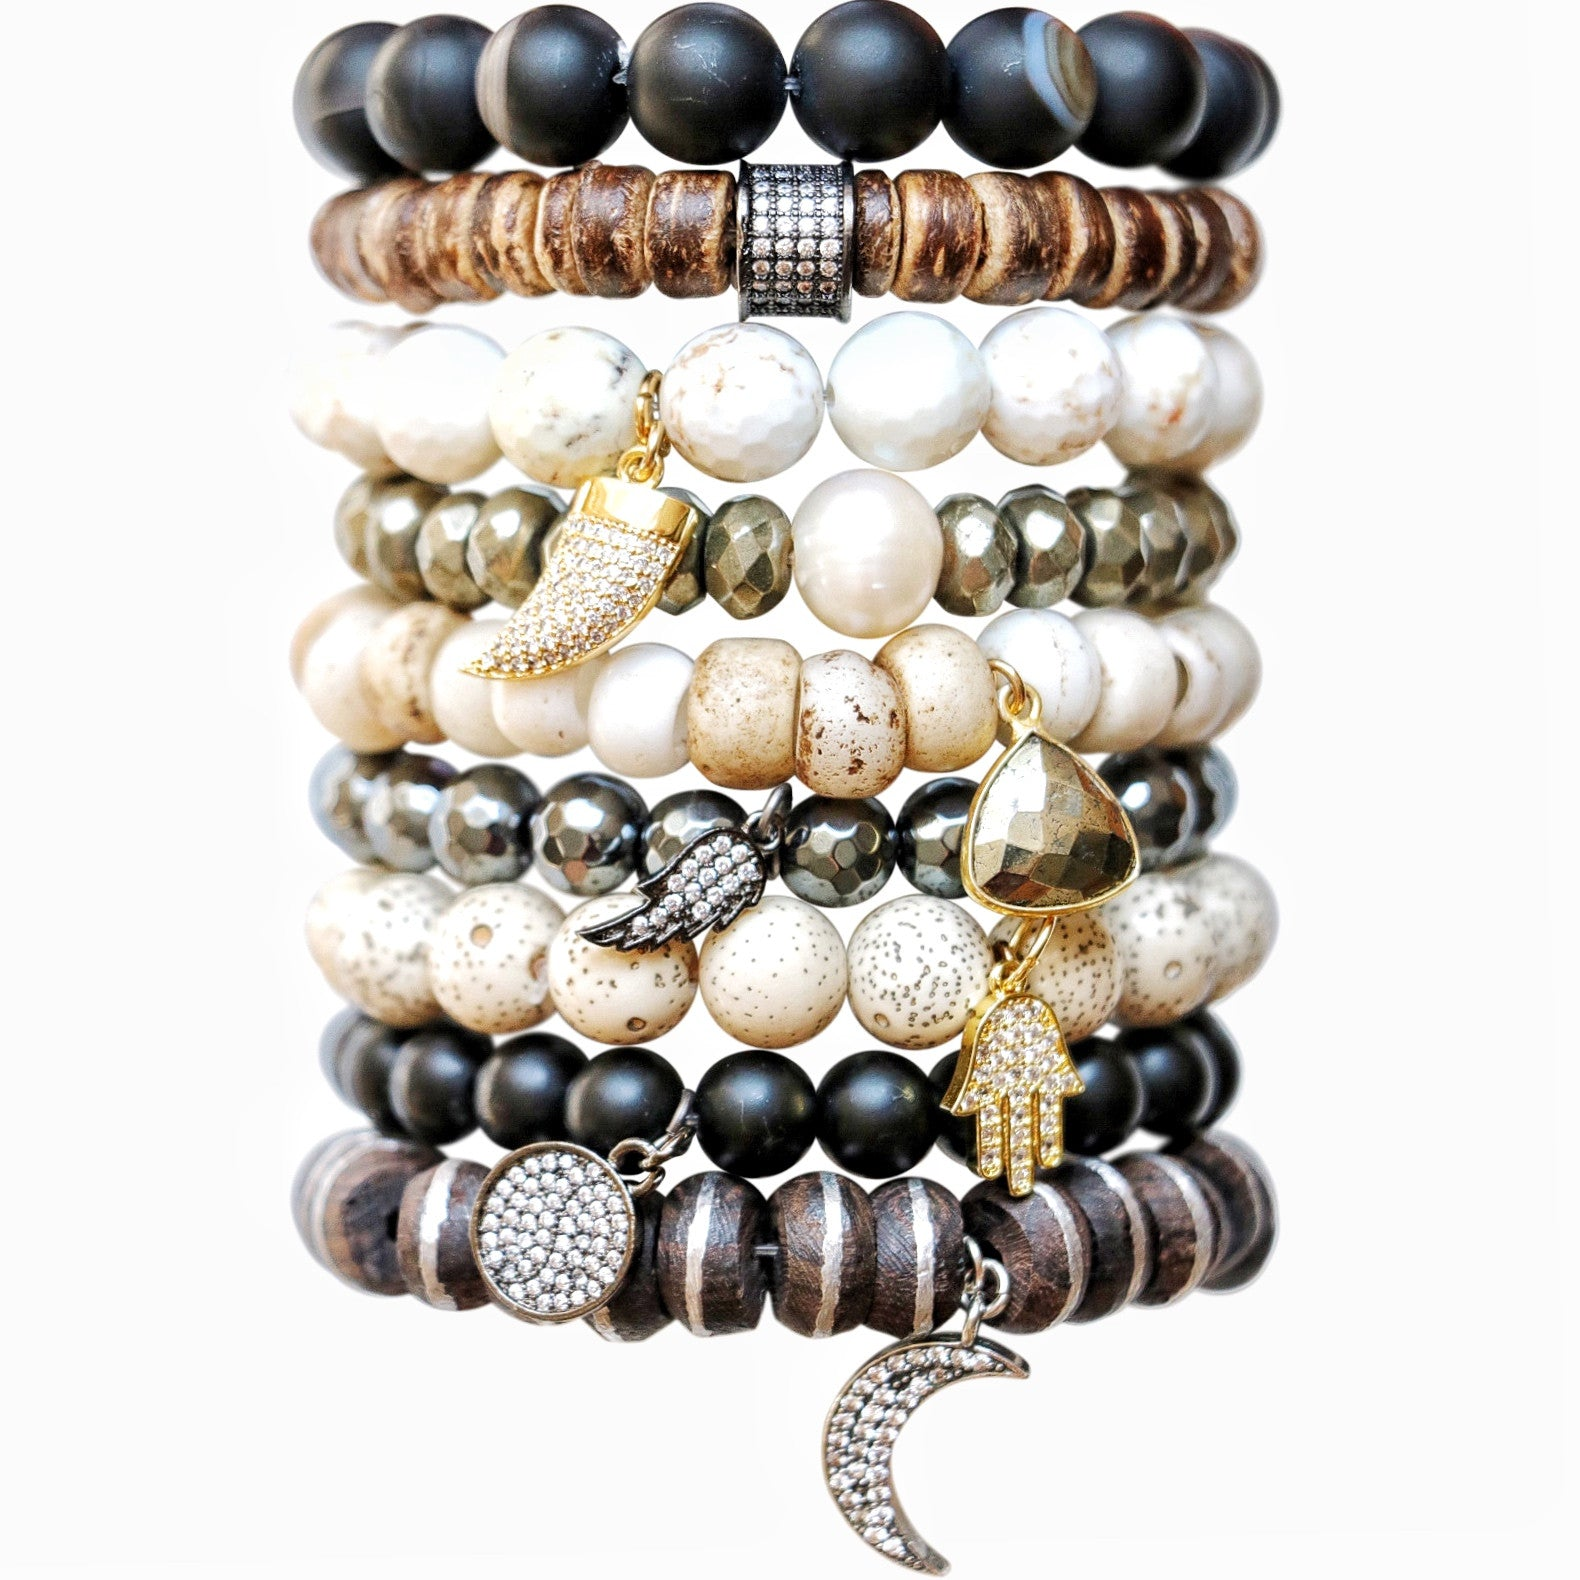 Molly Jane Designs Striped Bali Bead Charm Bracelet